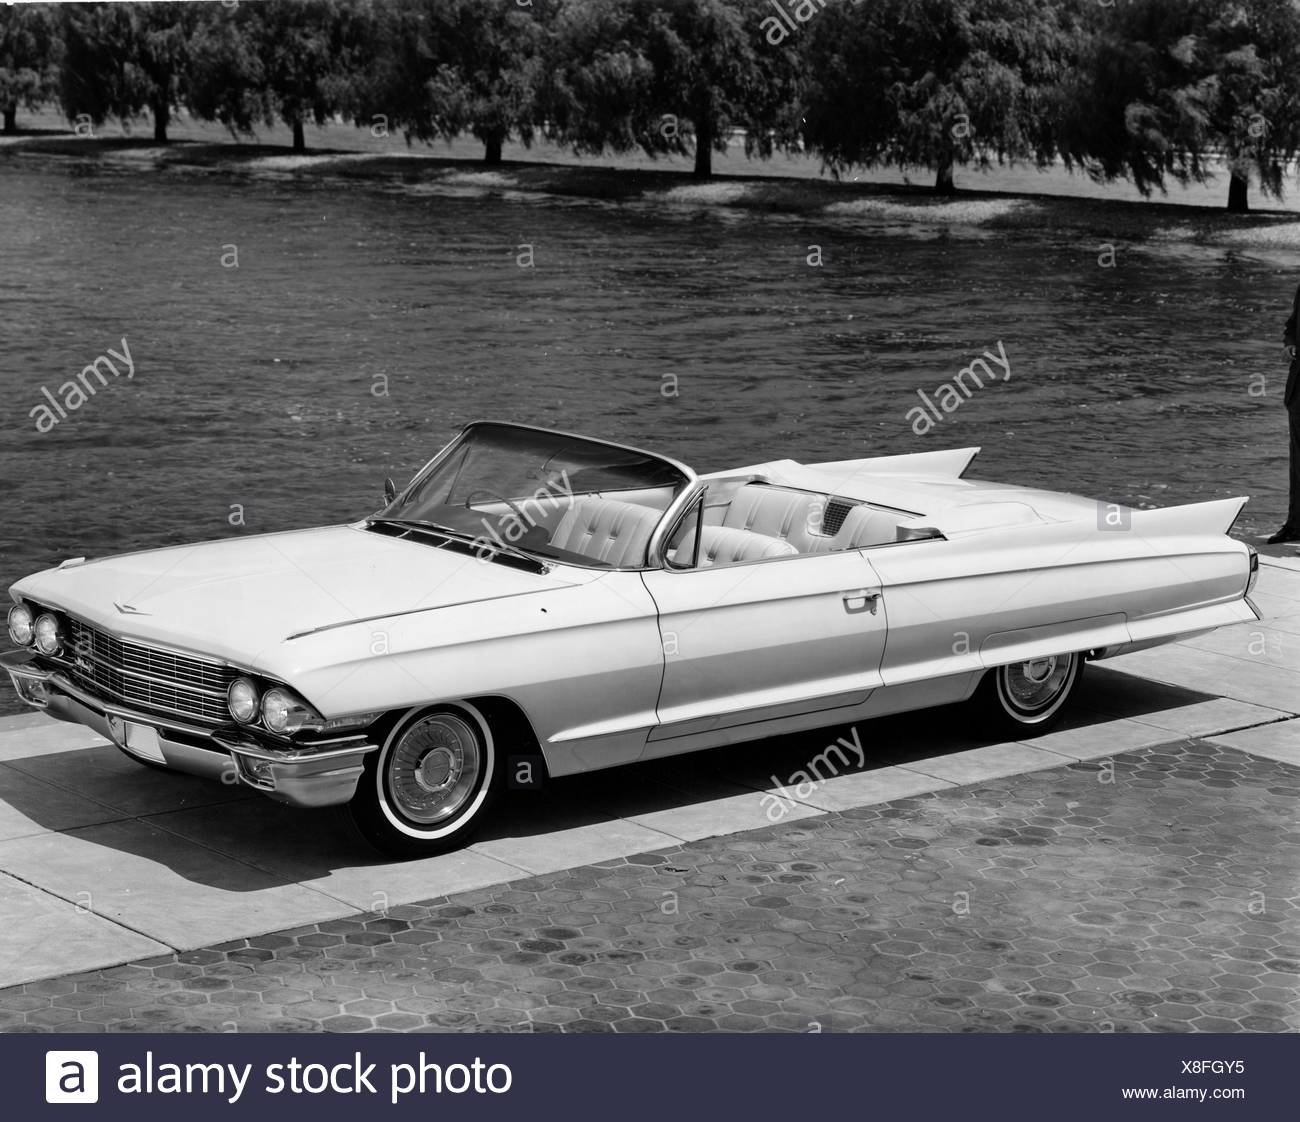 High angle view of a convertible car parked near lake, 1962 Cadillac Series 62 - Stock Image